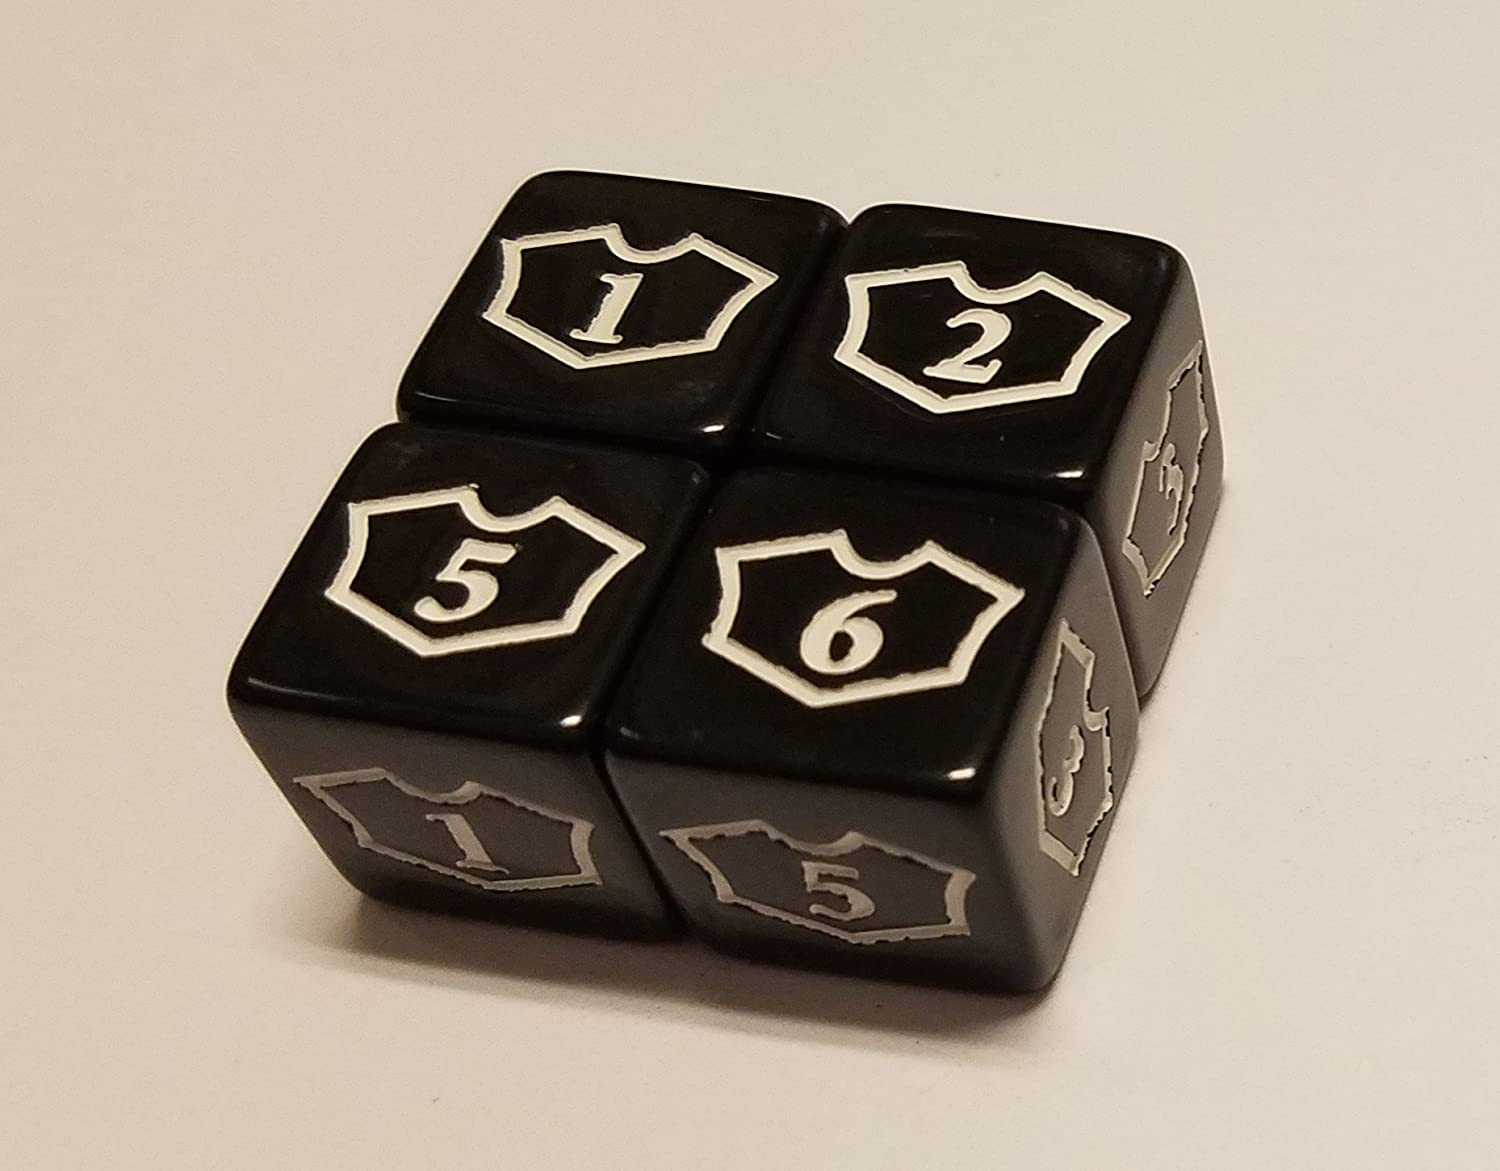 8x Planeswalker 1-6 /& 7-12 Loyalty Dice for Magic The Gathering CCG MTG by quEmpire